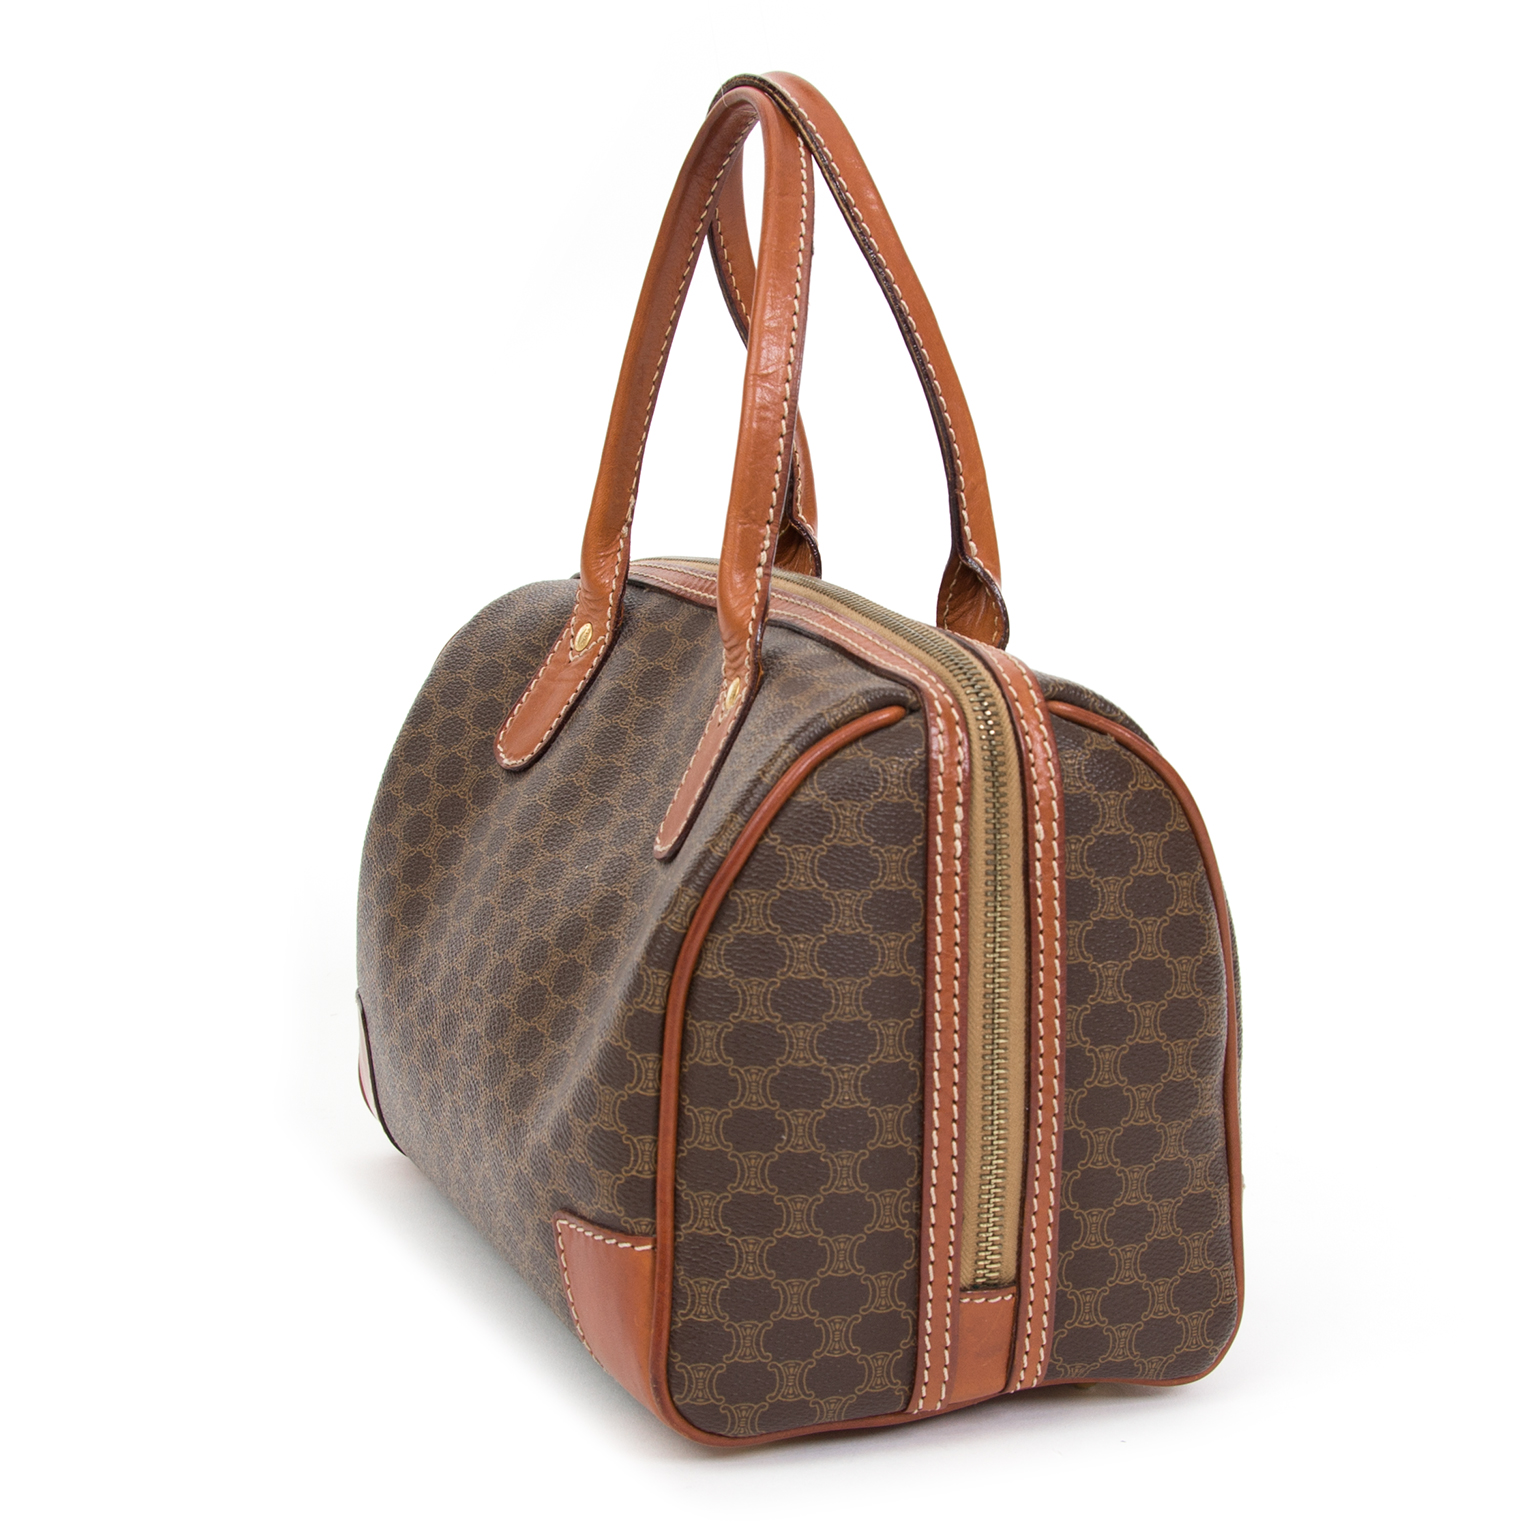 Online Replica Bags Where Can I Authentic Celine